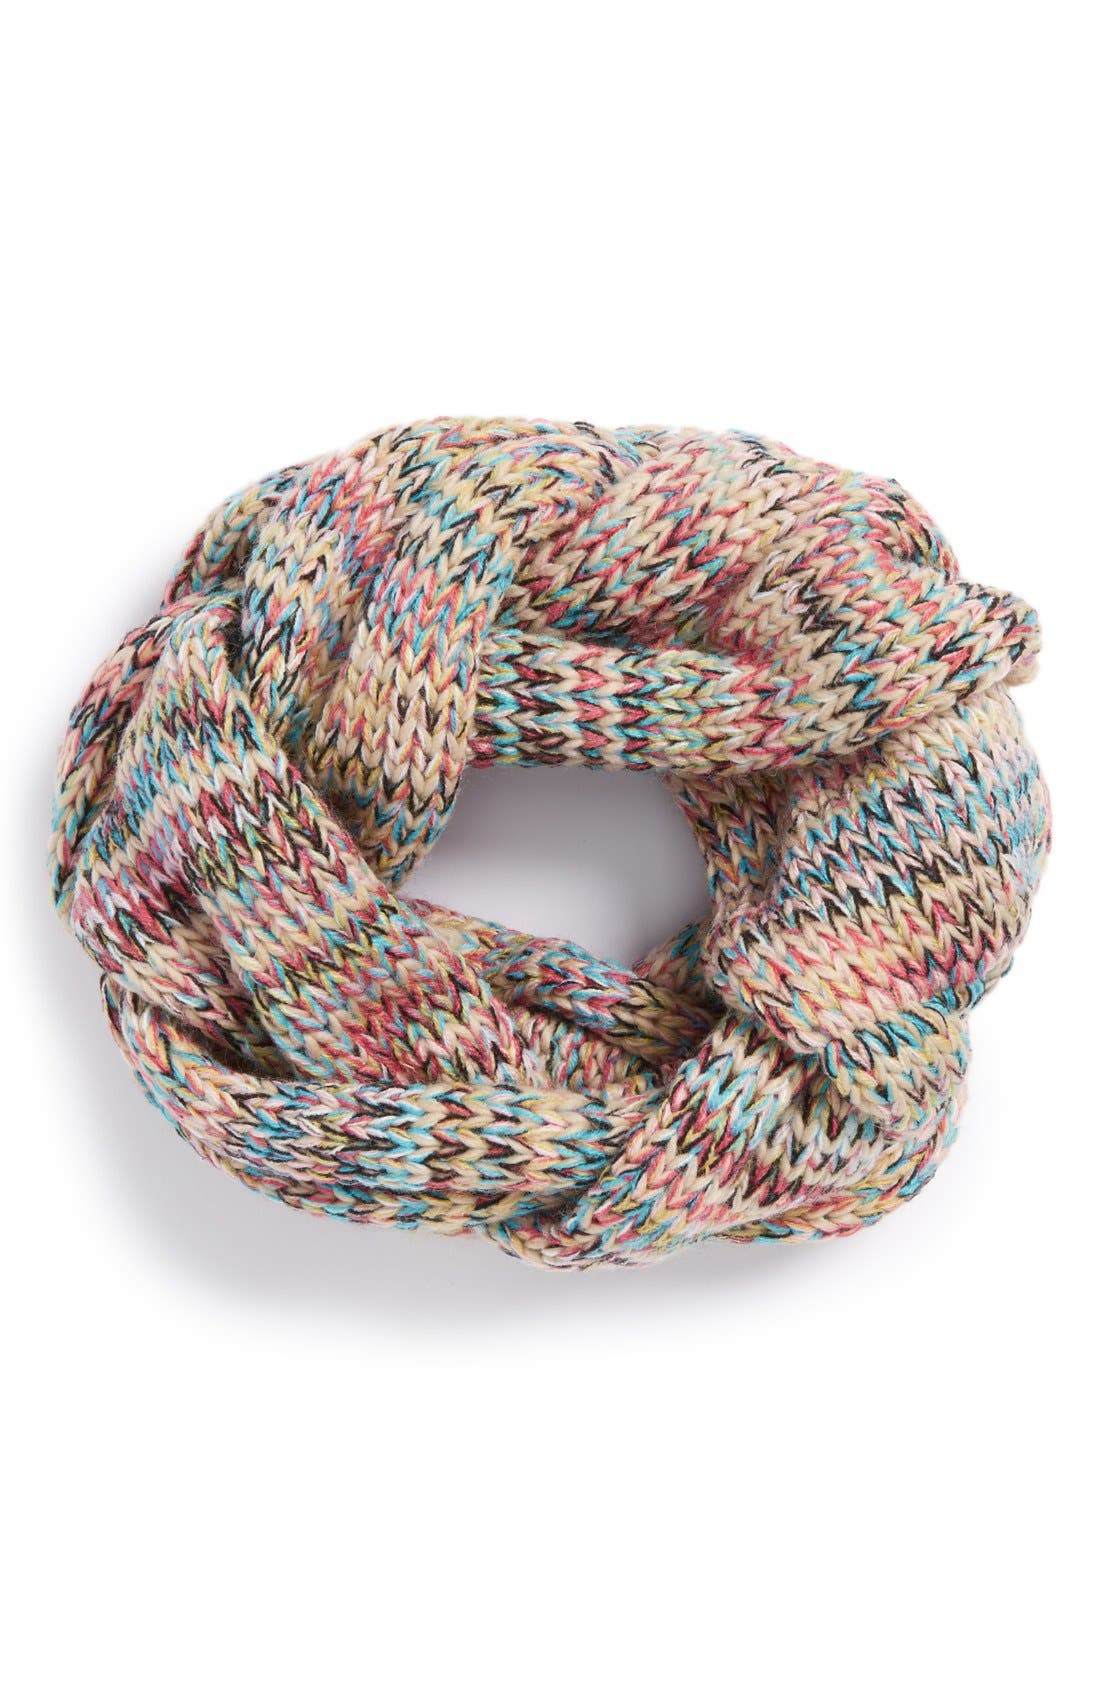 Alternate Image 1 Selected - Tucker + Tate Knit Snood (Girls)